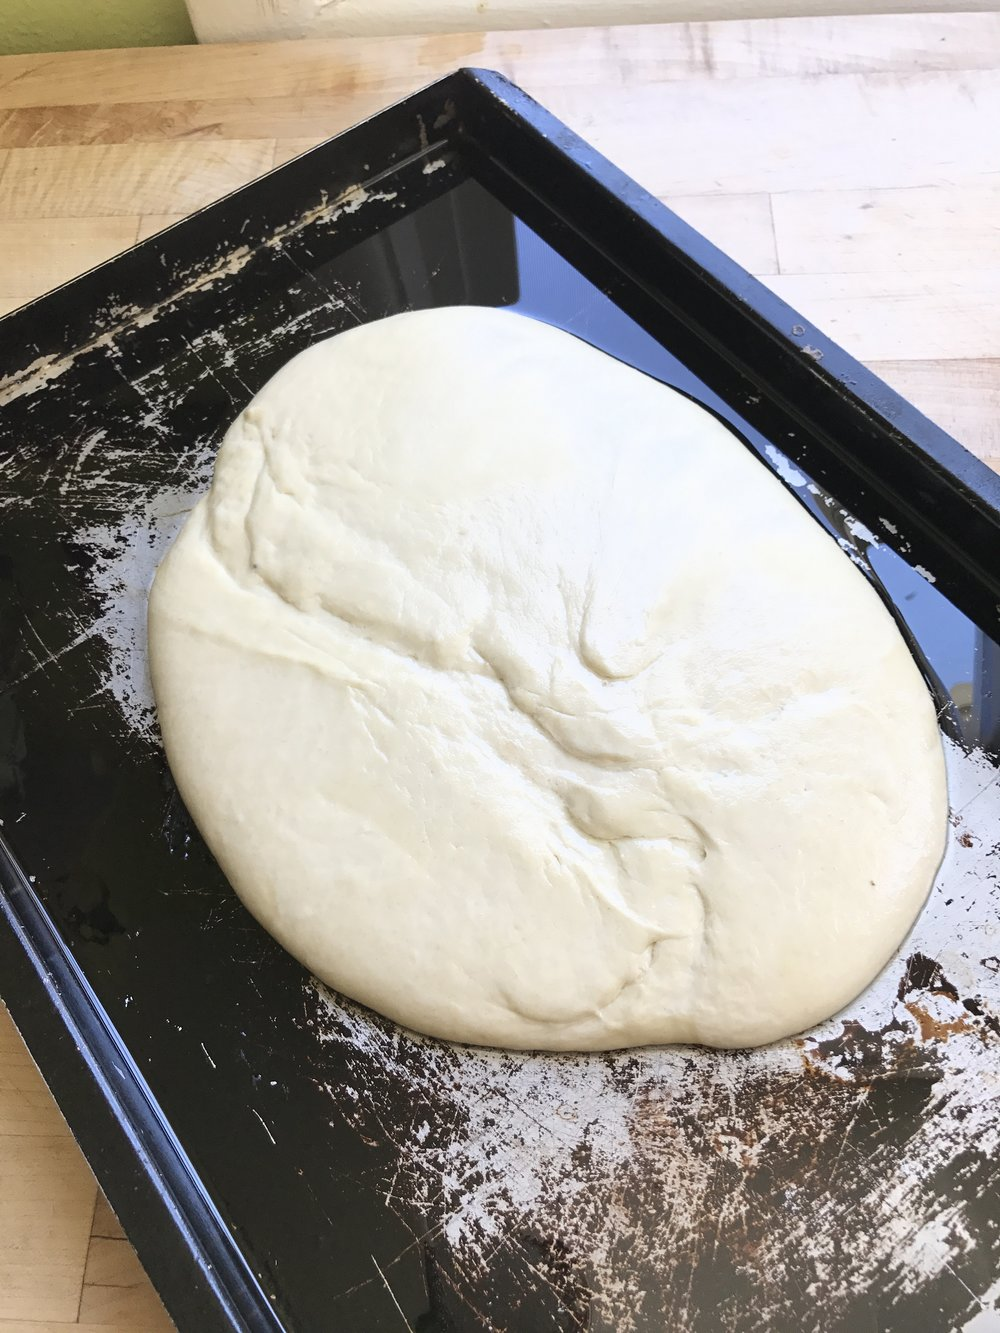 - This dough is very wet and should almost